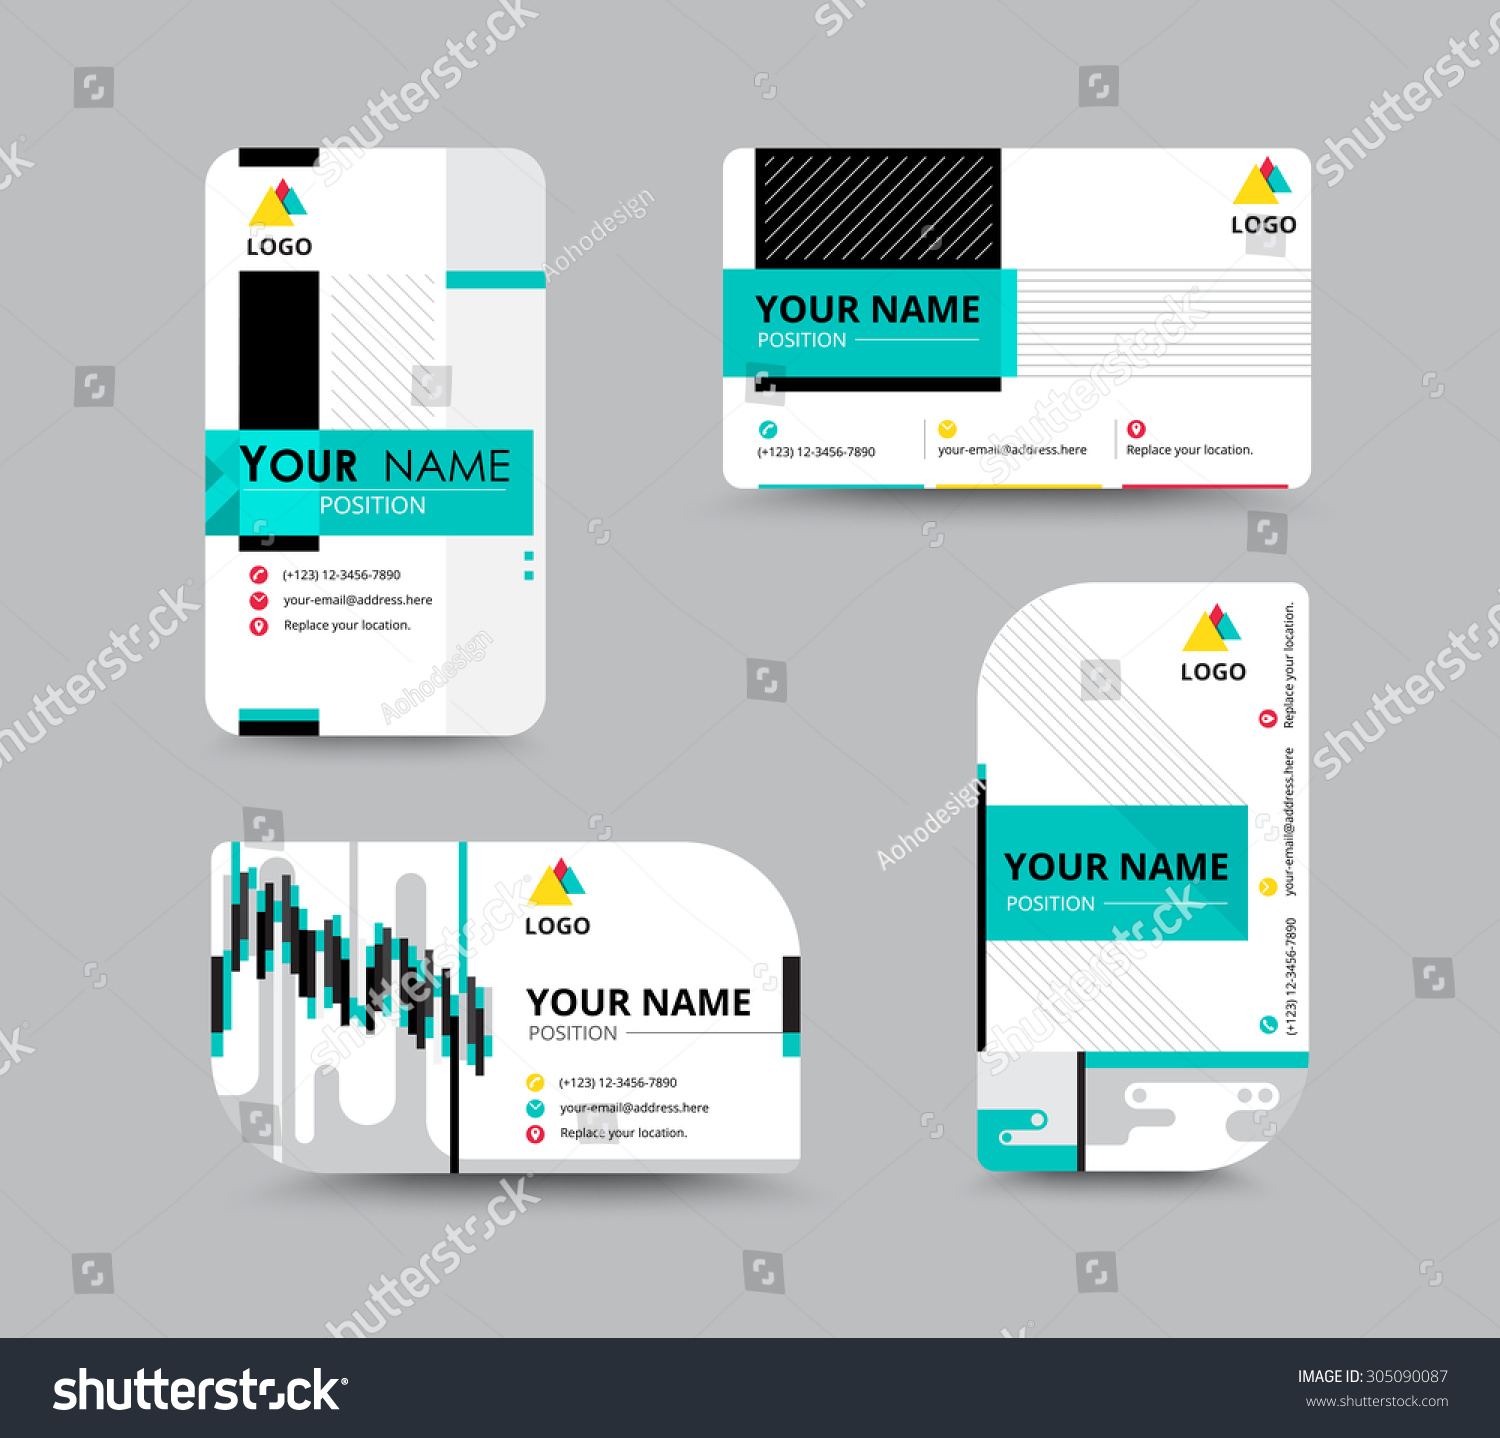 business contact card template design flyer template vector illustration 305090087. Black Bedroom Furniture Sets. Home Design Ideas